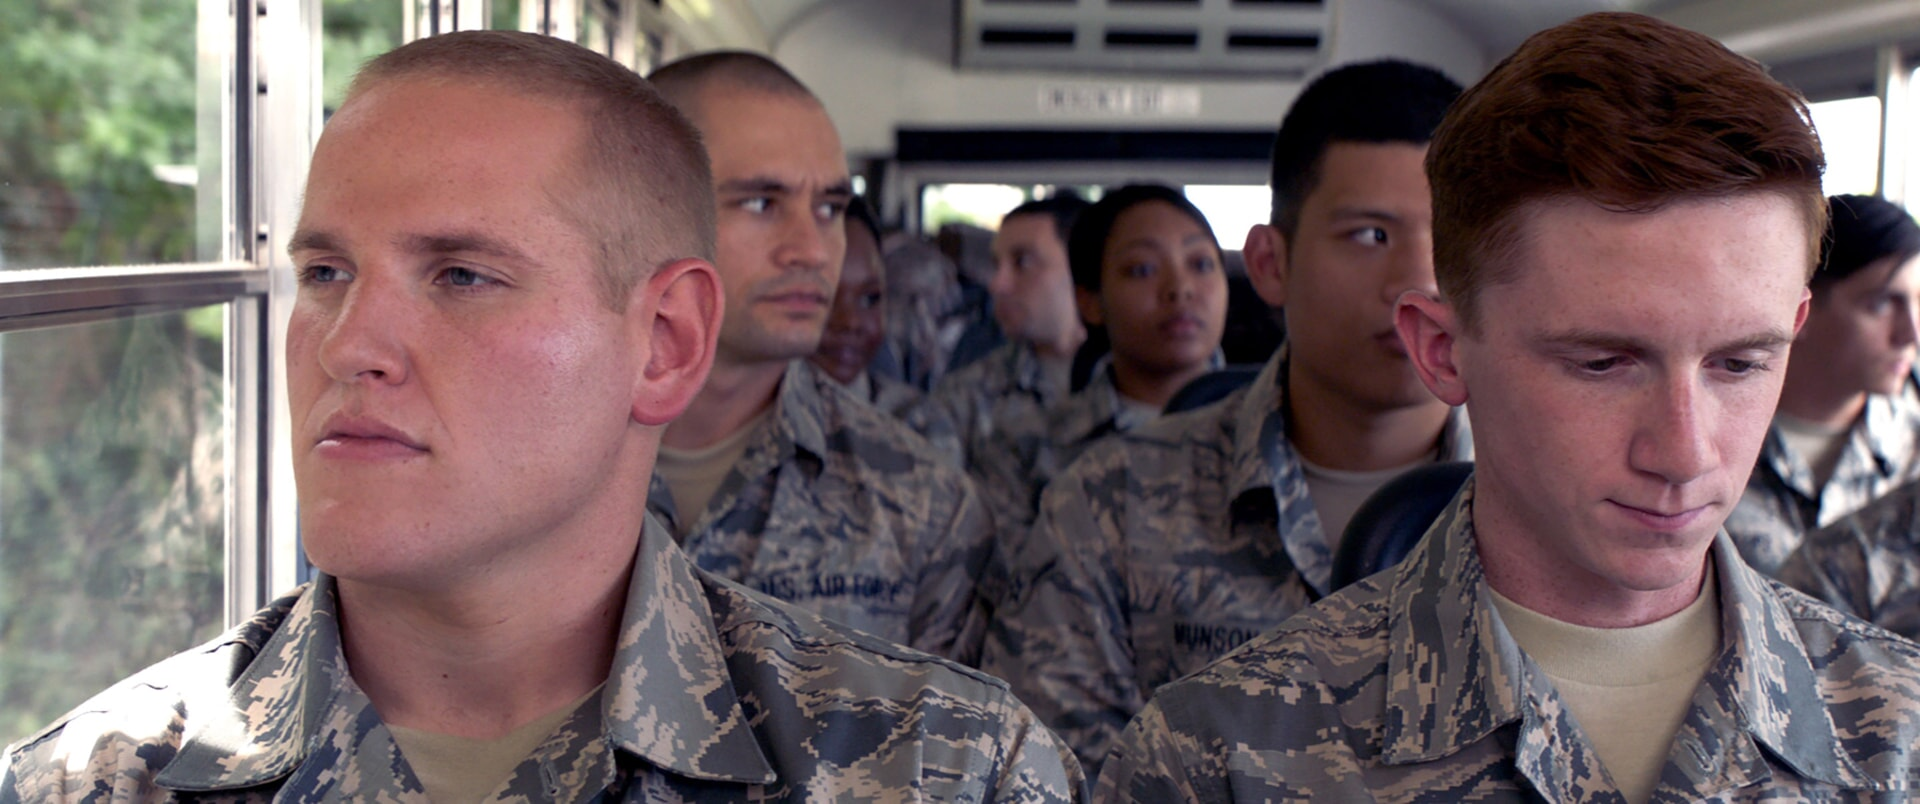 """SPENCER STONE as Spencer and SETH MERIWETHER as Francis in Warner Bros. Pictures' and Village Roadshow Pictures' """"THE 15:17 TO PARIS,"""" a Warner Bros. Pictures release."""